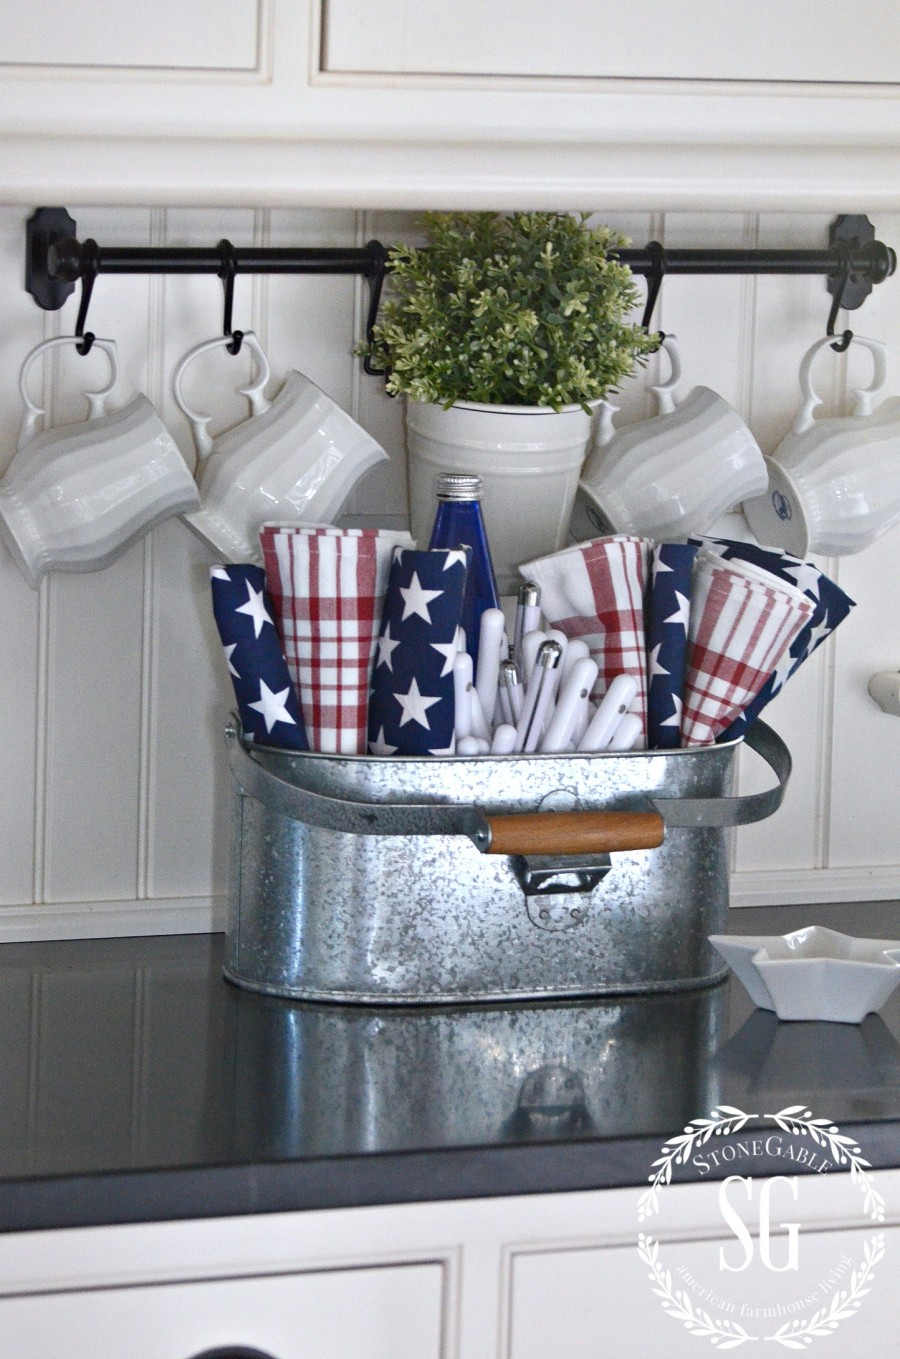 SUMMER HOME TOUR-summer kitchen-galvanized metal-napkins-stonegableblog.com